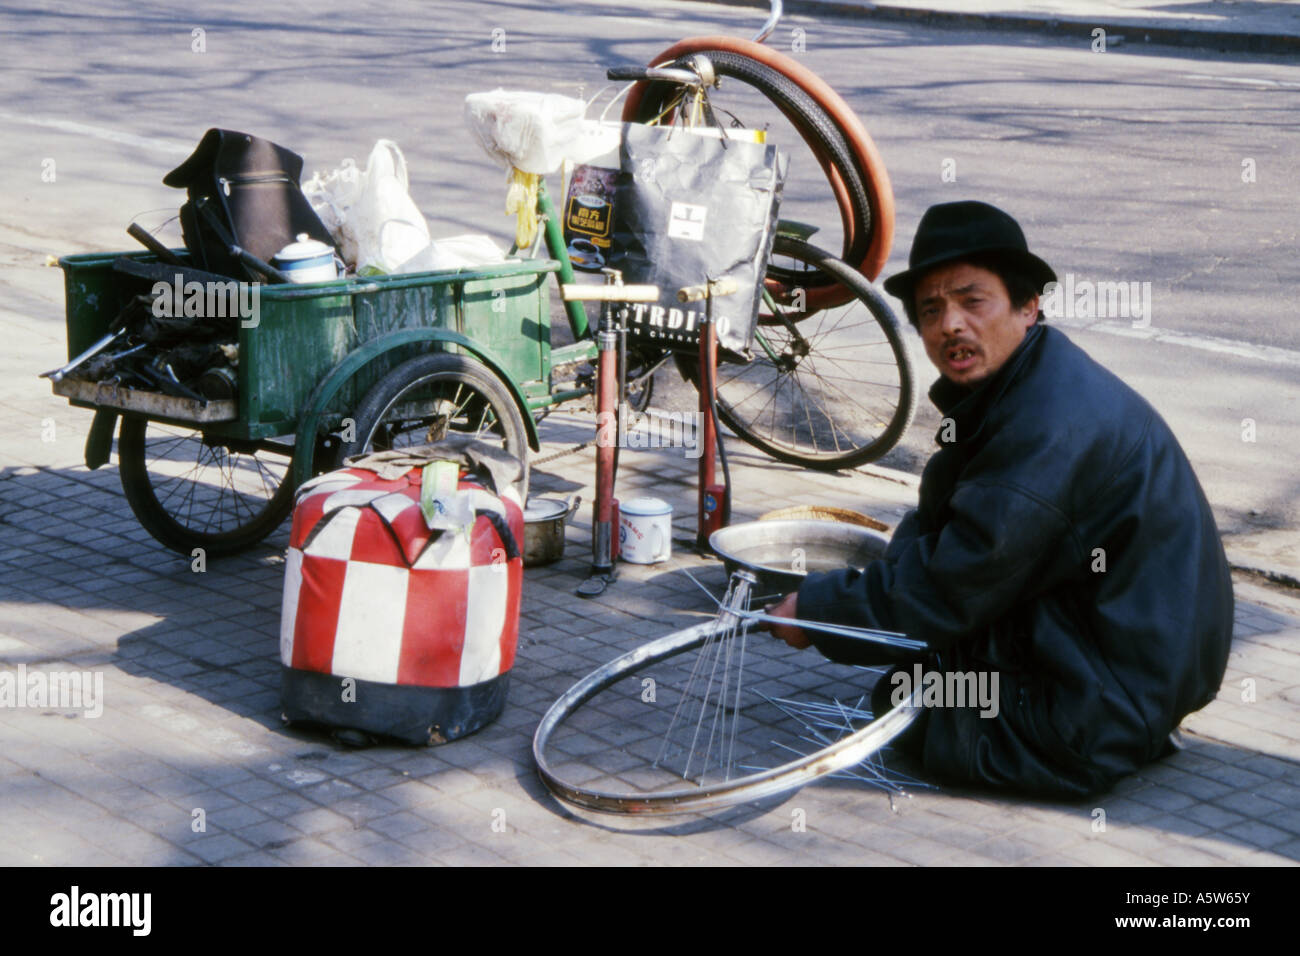 Local bicycle repair man working on a bicycle wheel at the roadside,Beijing,China. Stock Photo